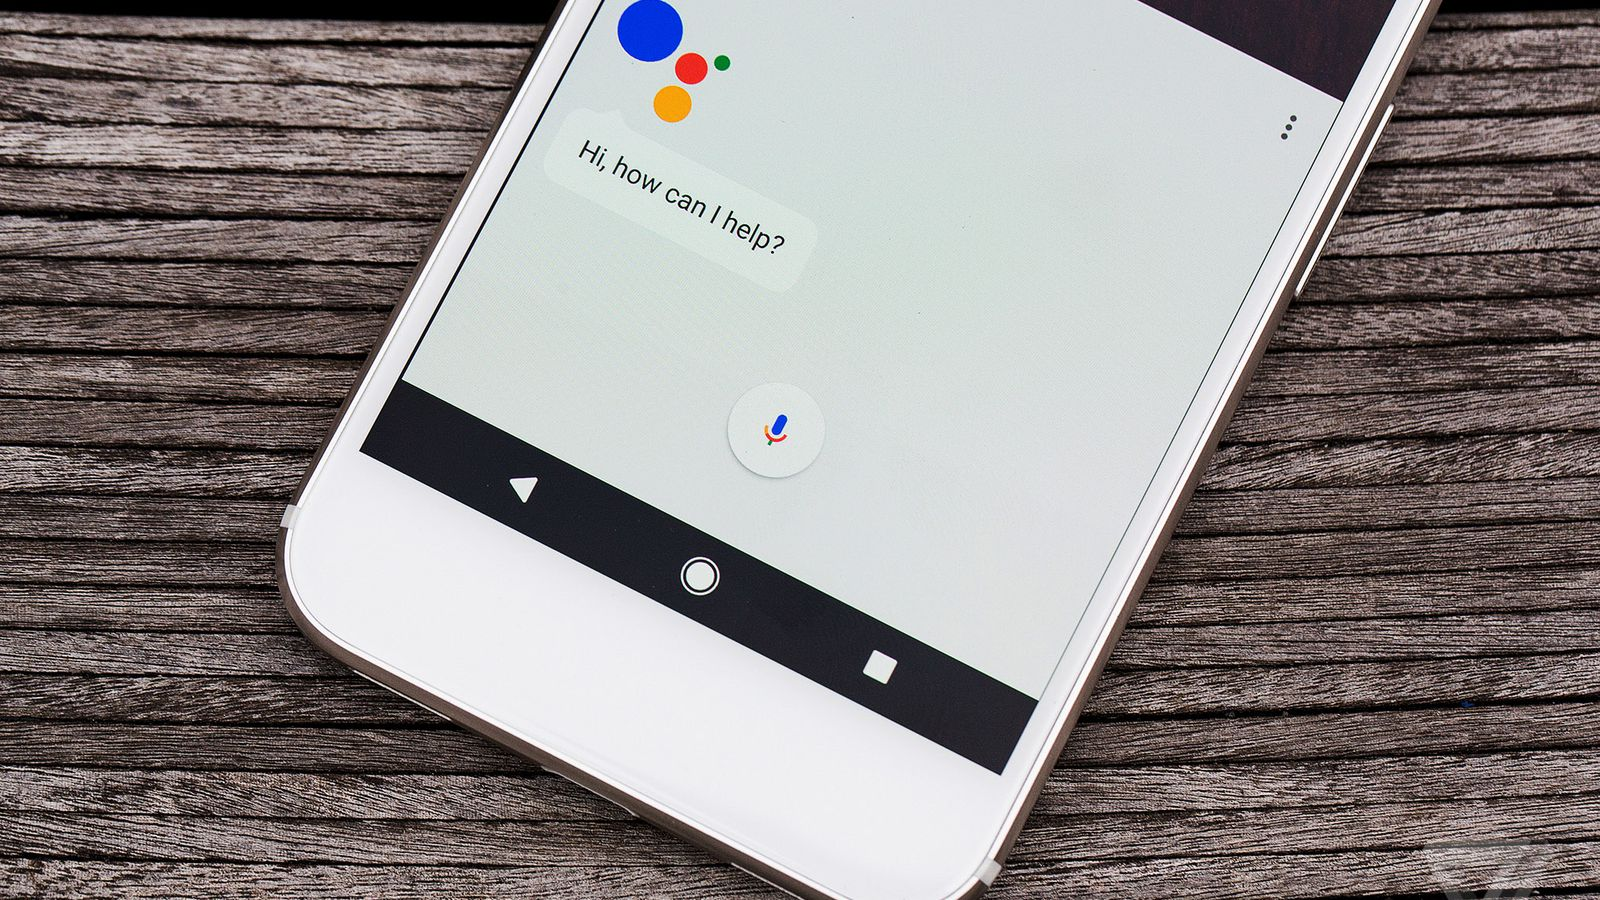 The Google Assistant is Coming to Marshmallow and Nougat Android Phones Starting this Week